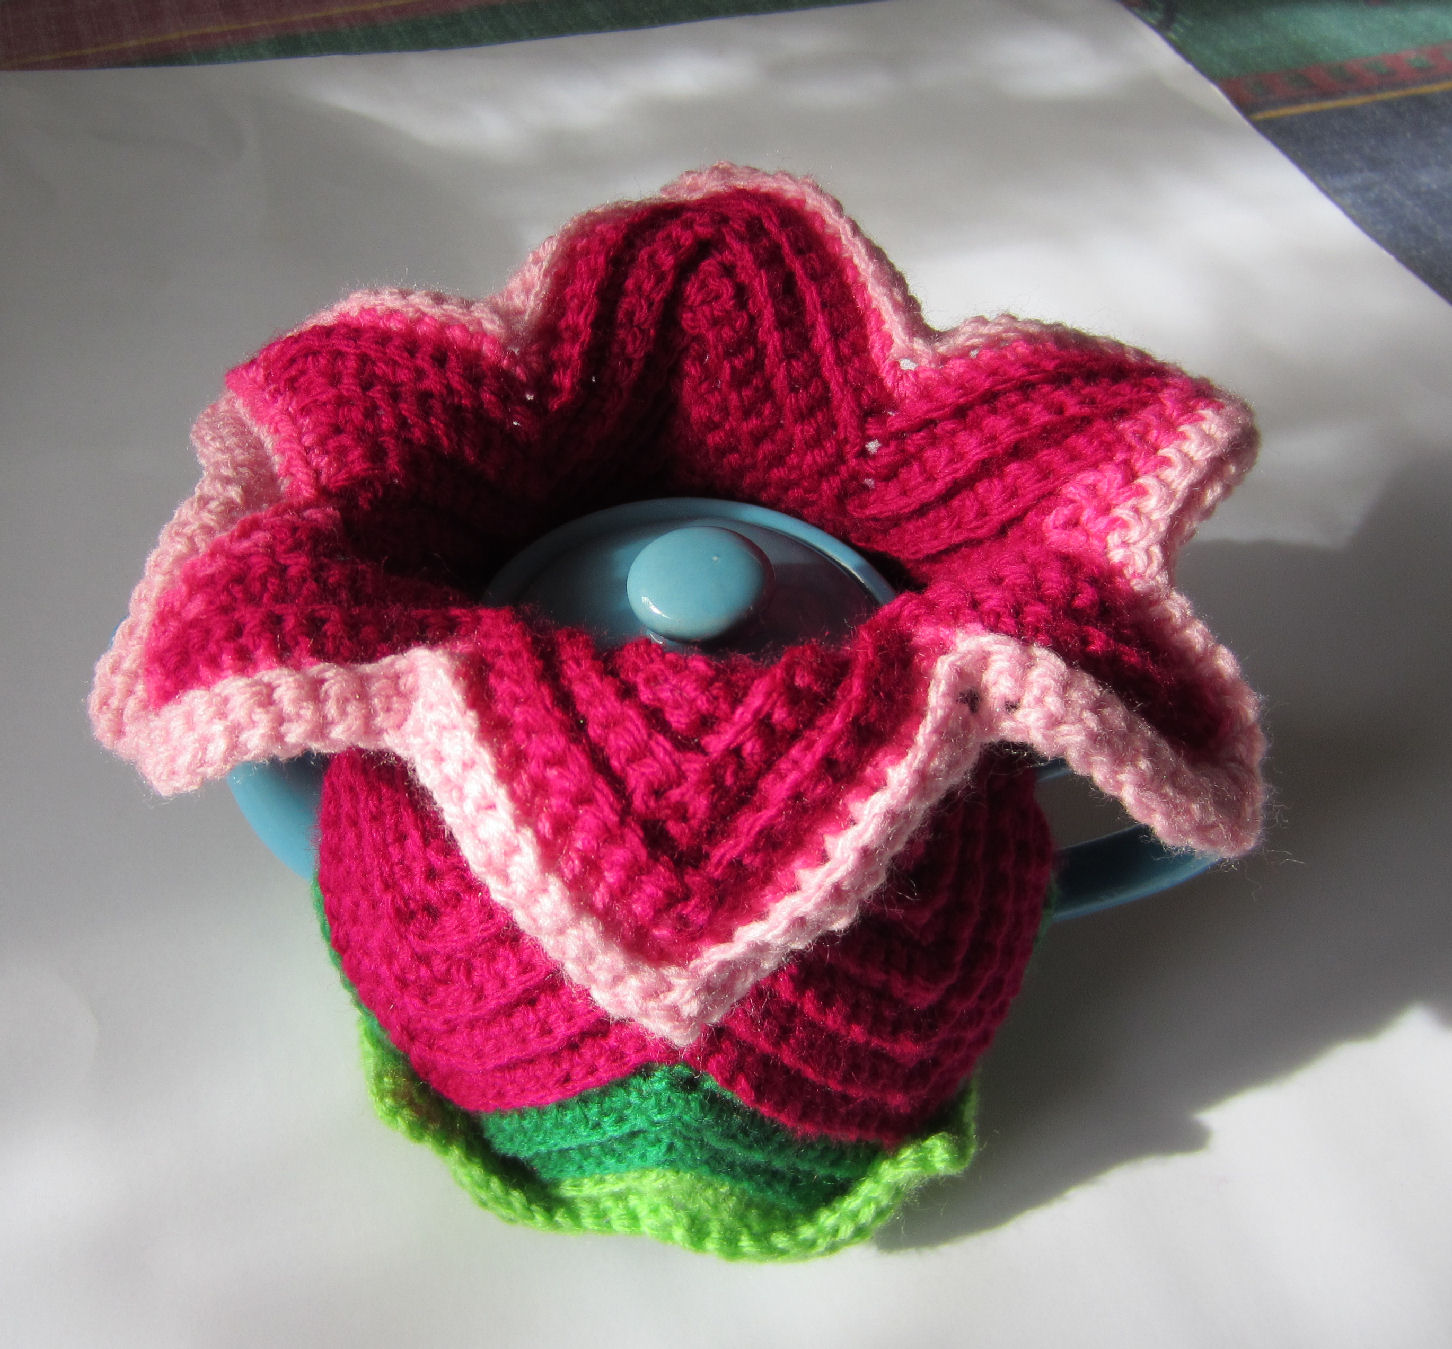 Justjen-knits&stitches: Daylily Tea Cosy For Mothers Day ...